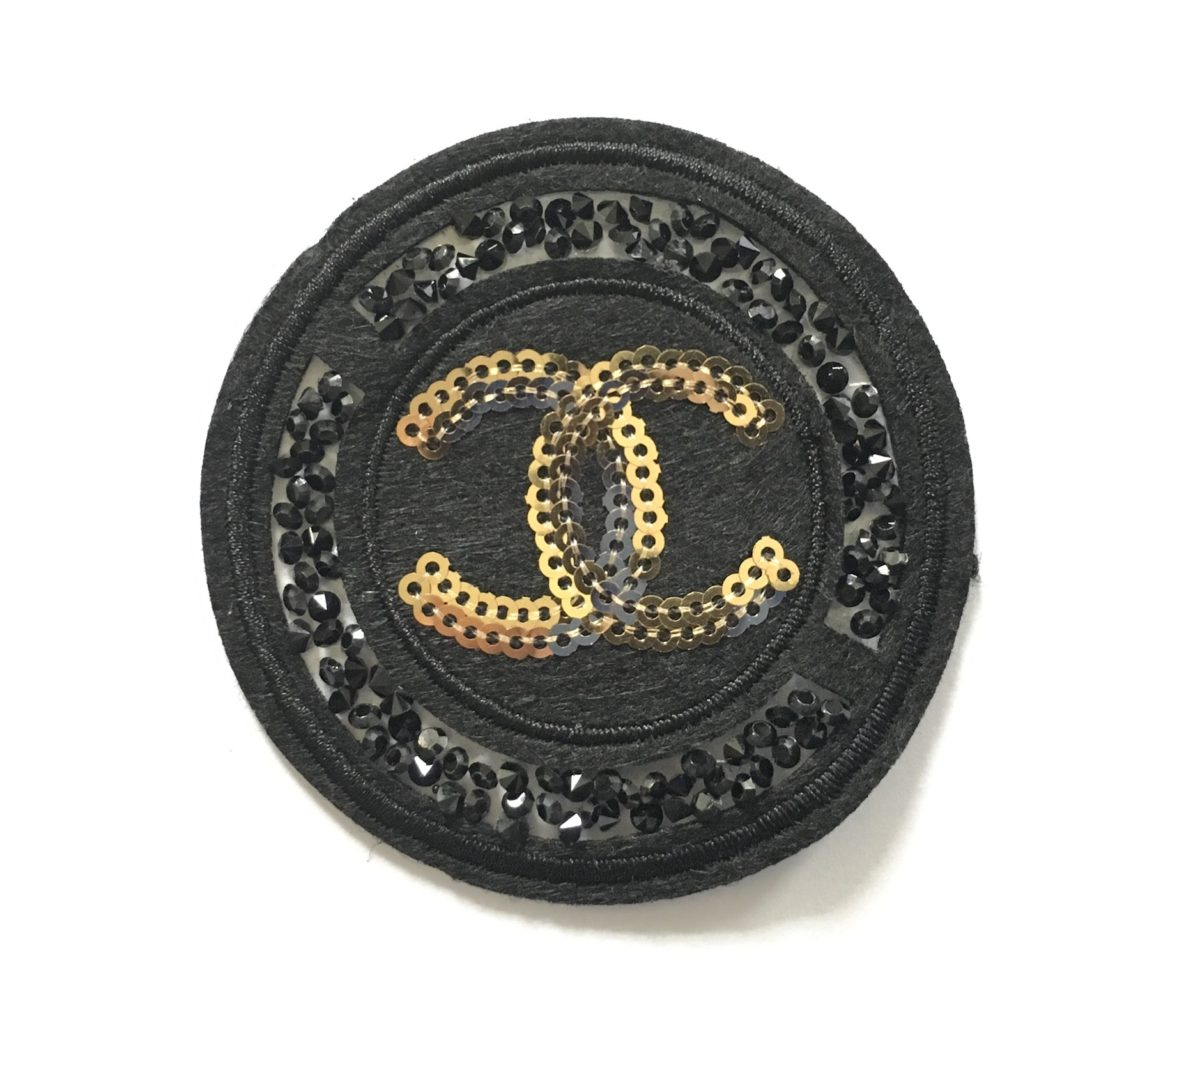 New Chanel Inspired Patch, Bling Patch 1